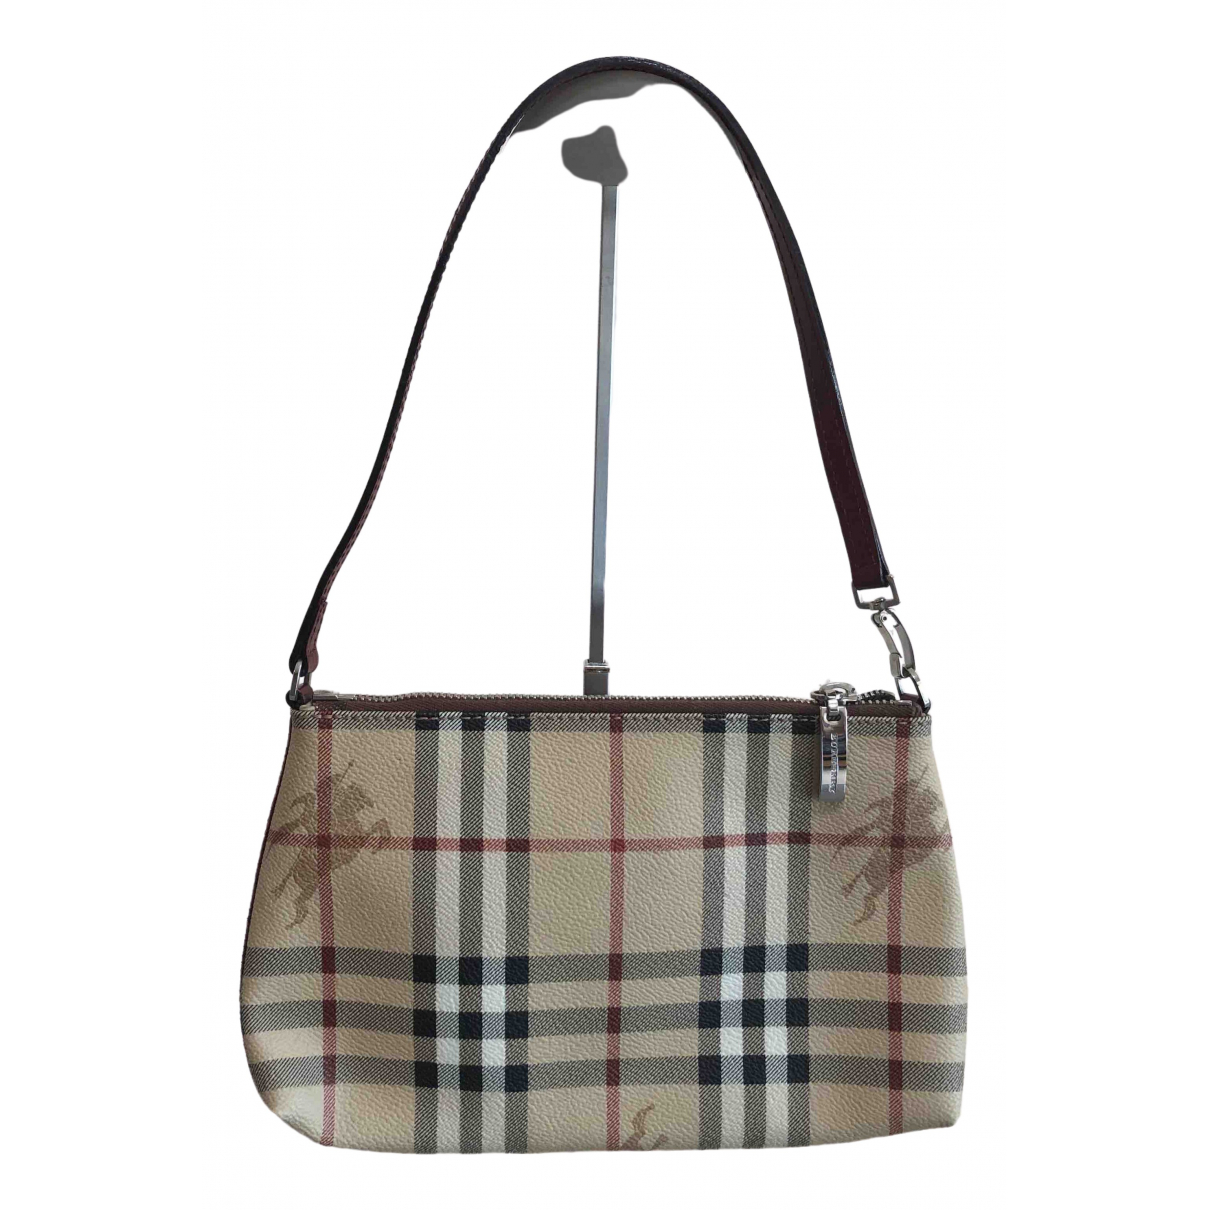 Burberry \N Cloth Clutch bag for Women \N